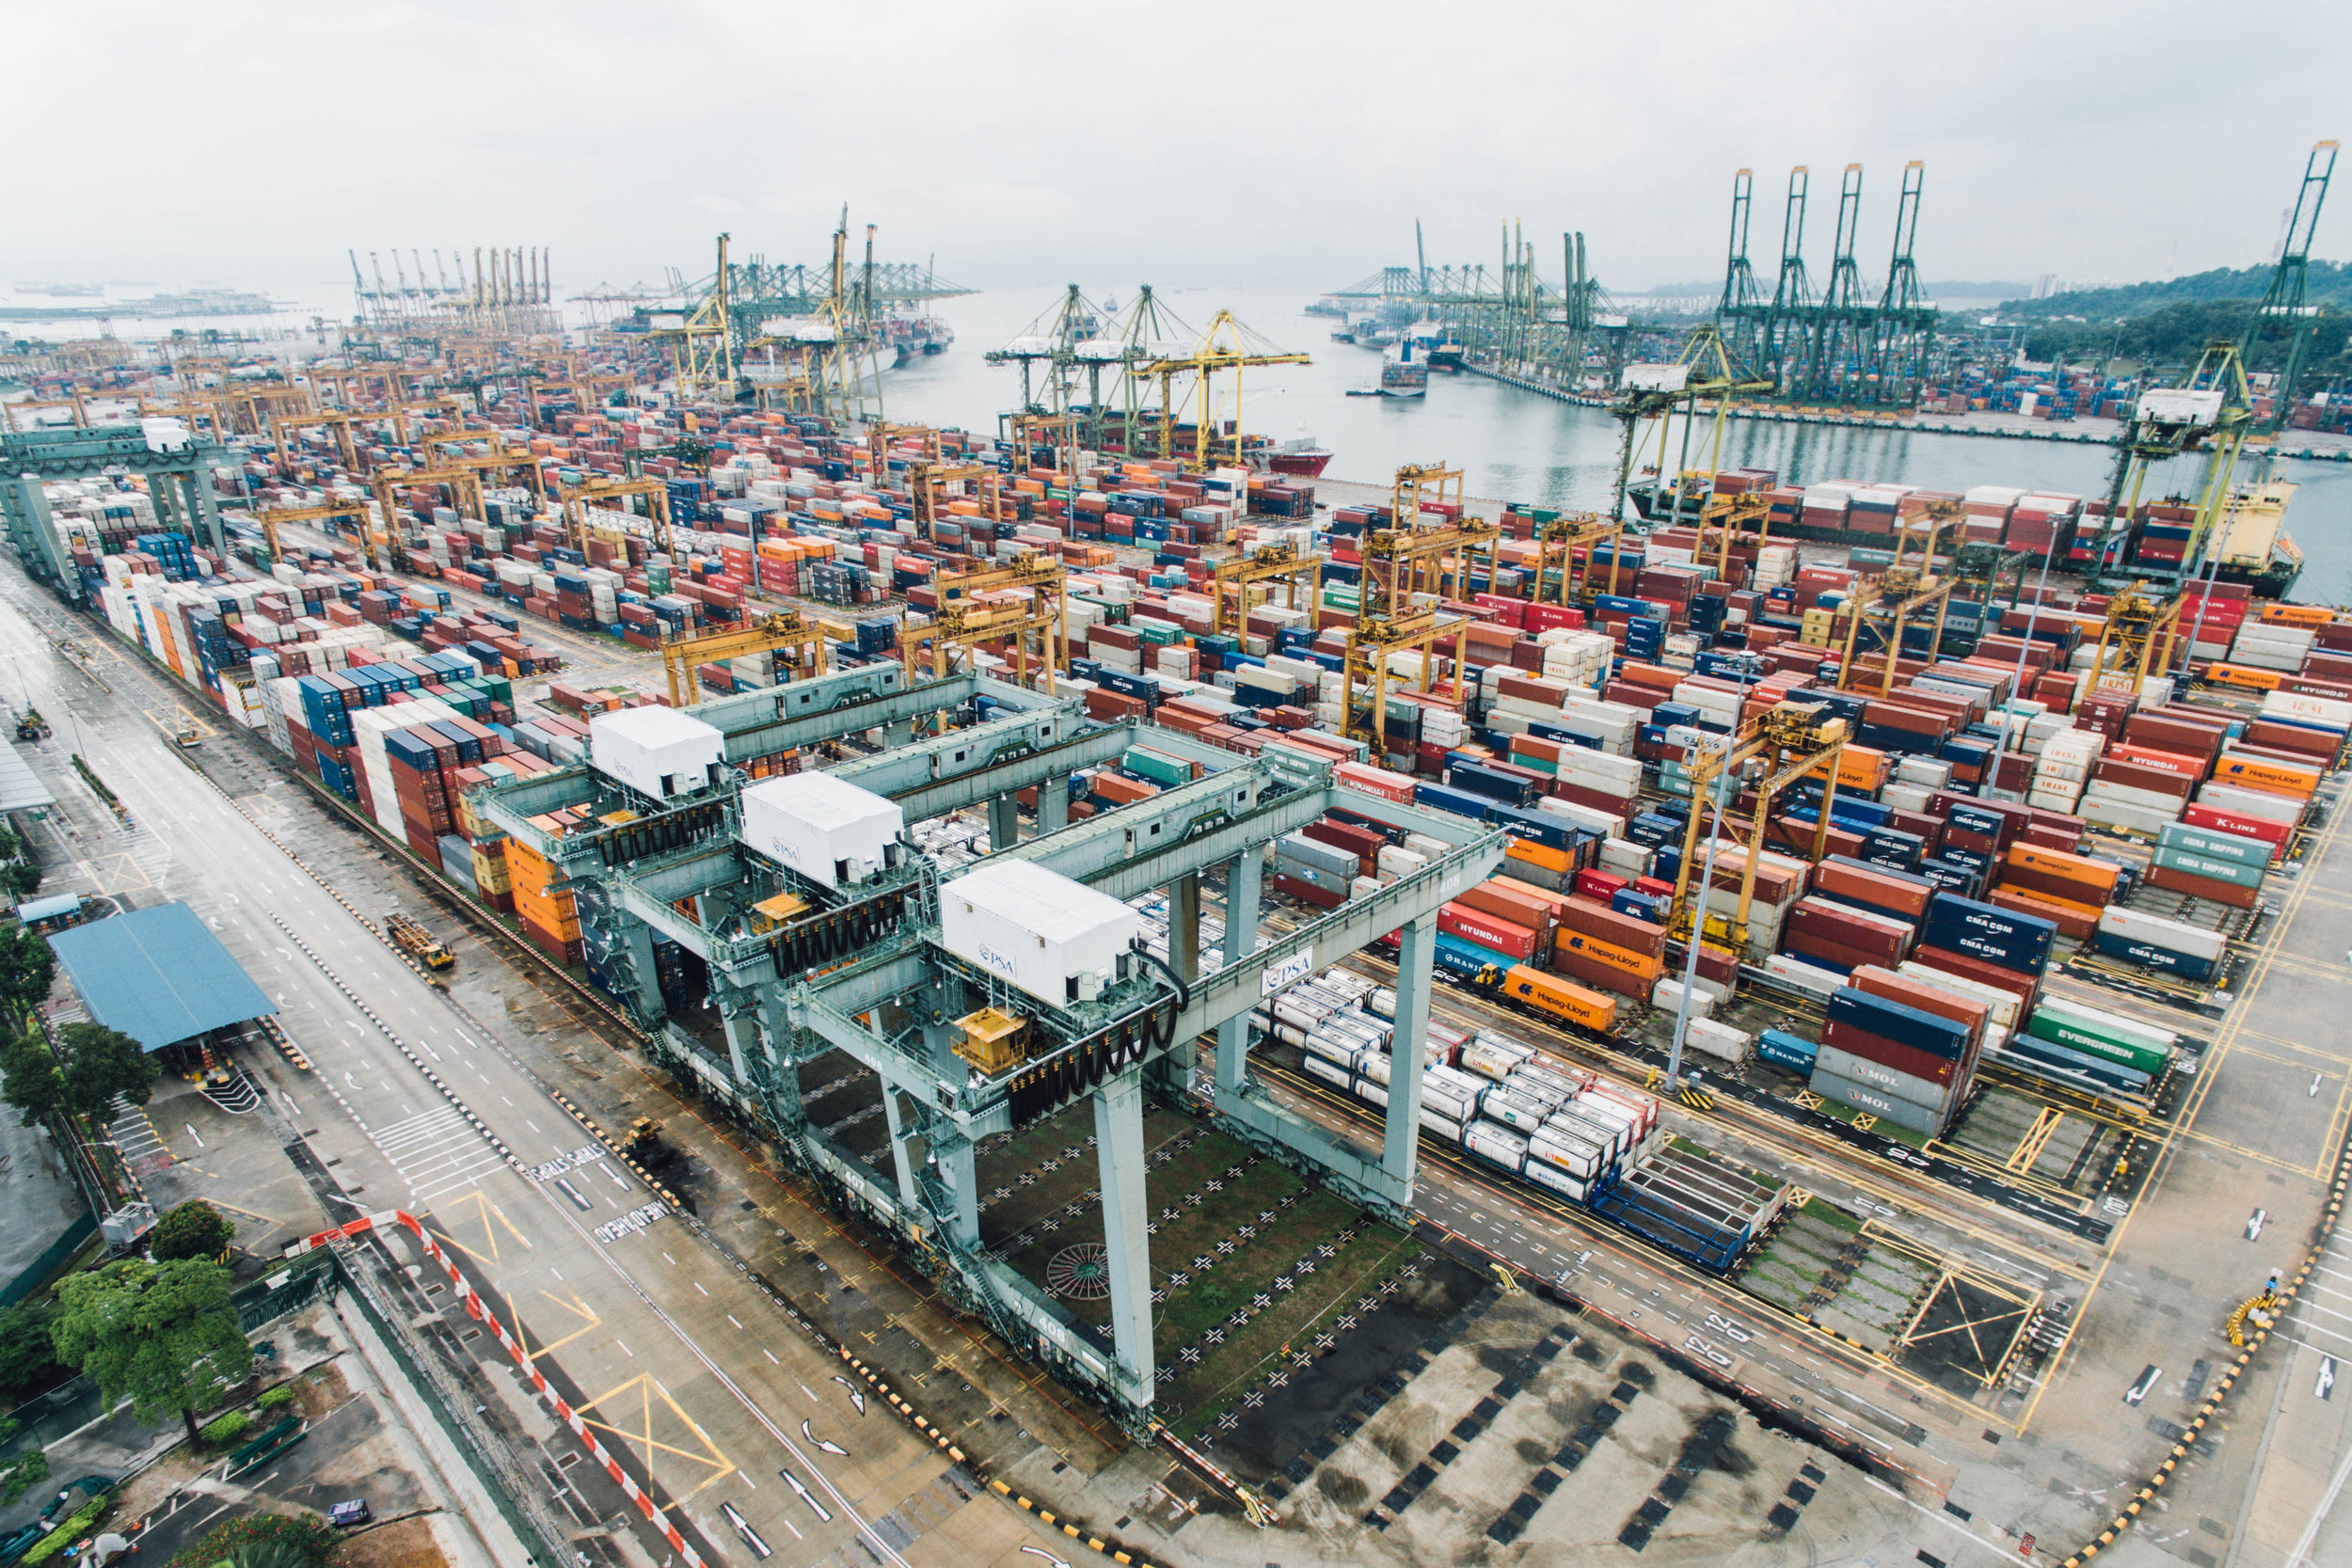 Looking to avoid demurrage? — SecūrSpace